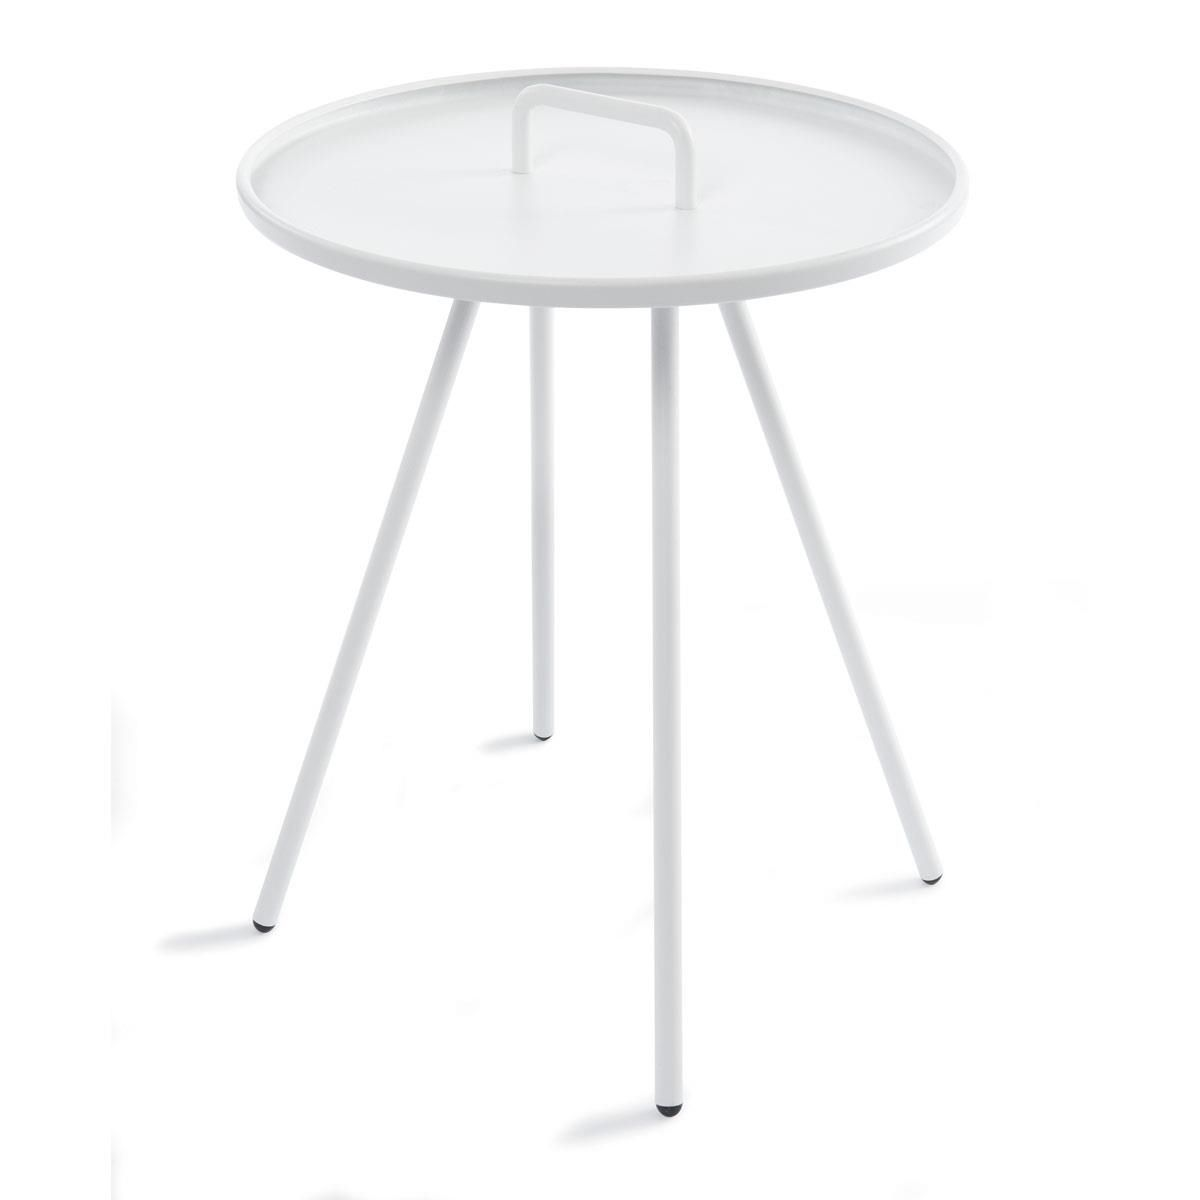 round outdoor metal table. Round Metal Table - White Option For Downstairs Outdoor. To Use With Black Or Chairs Outdoor